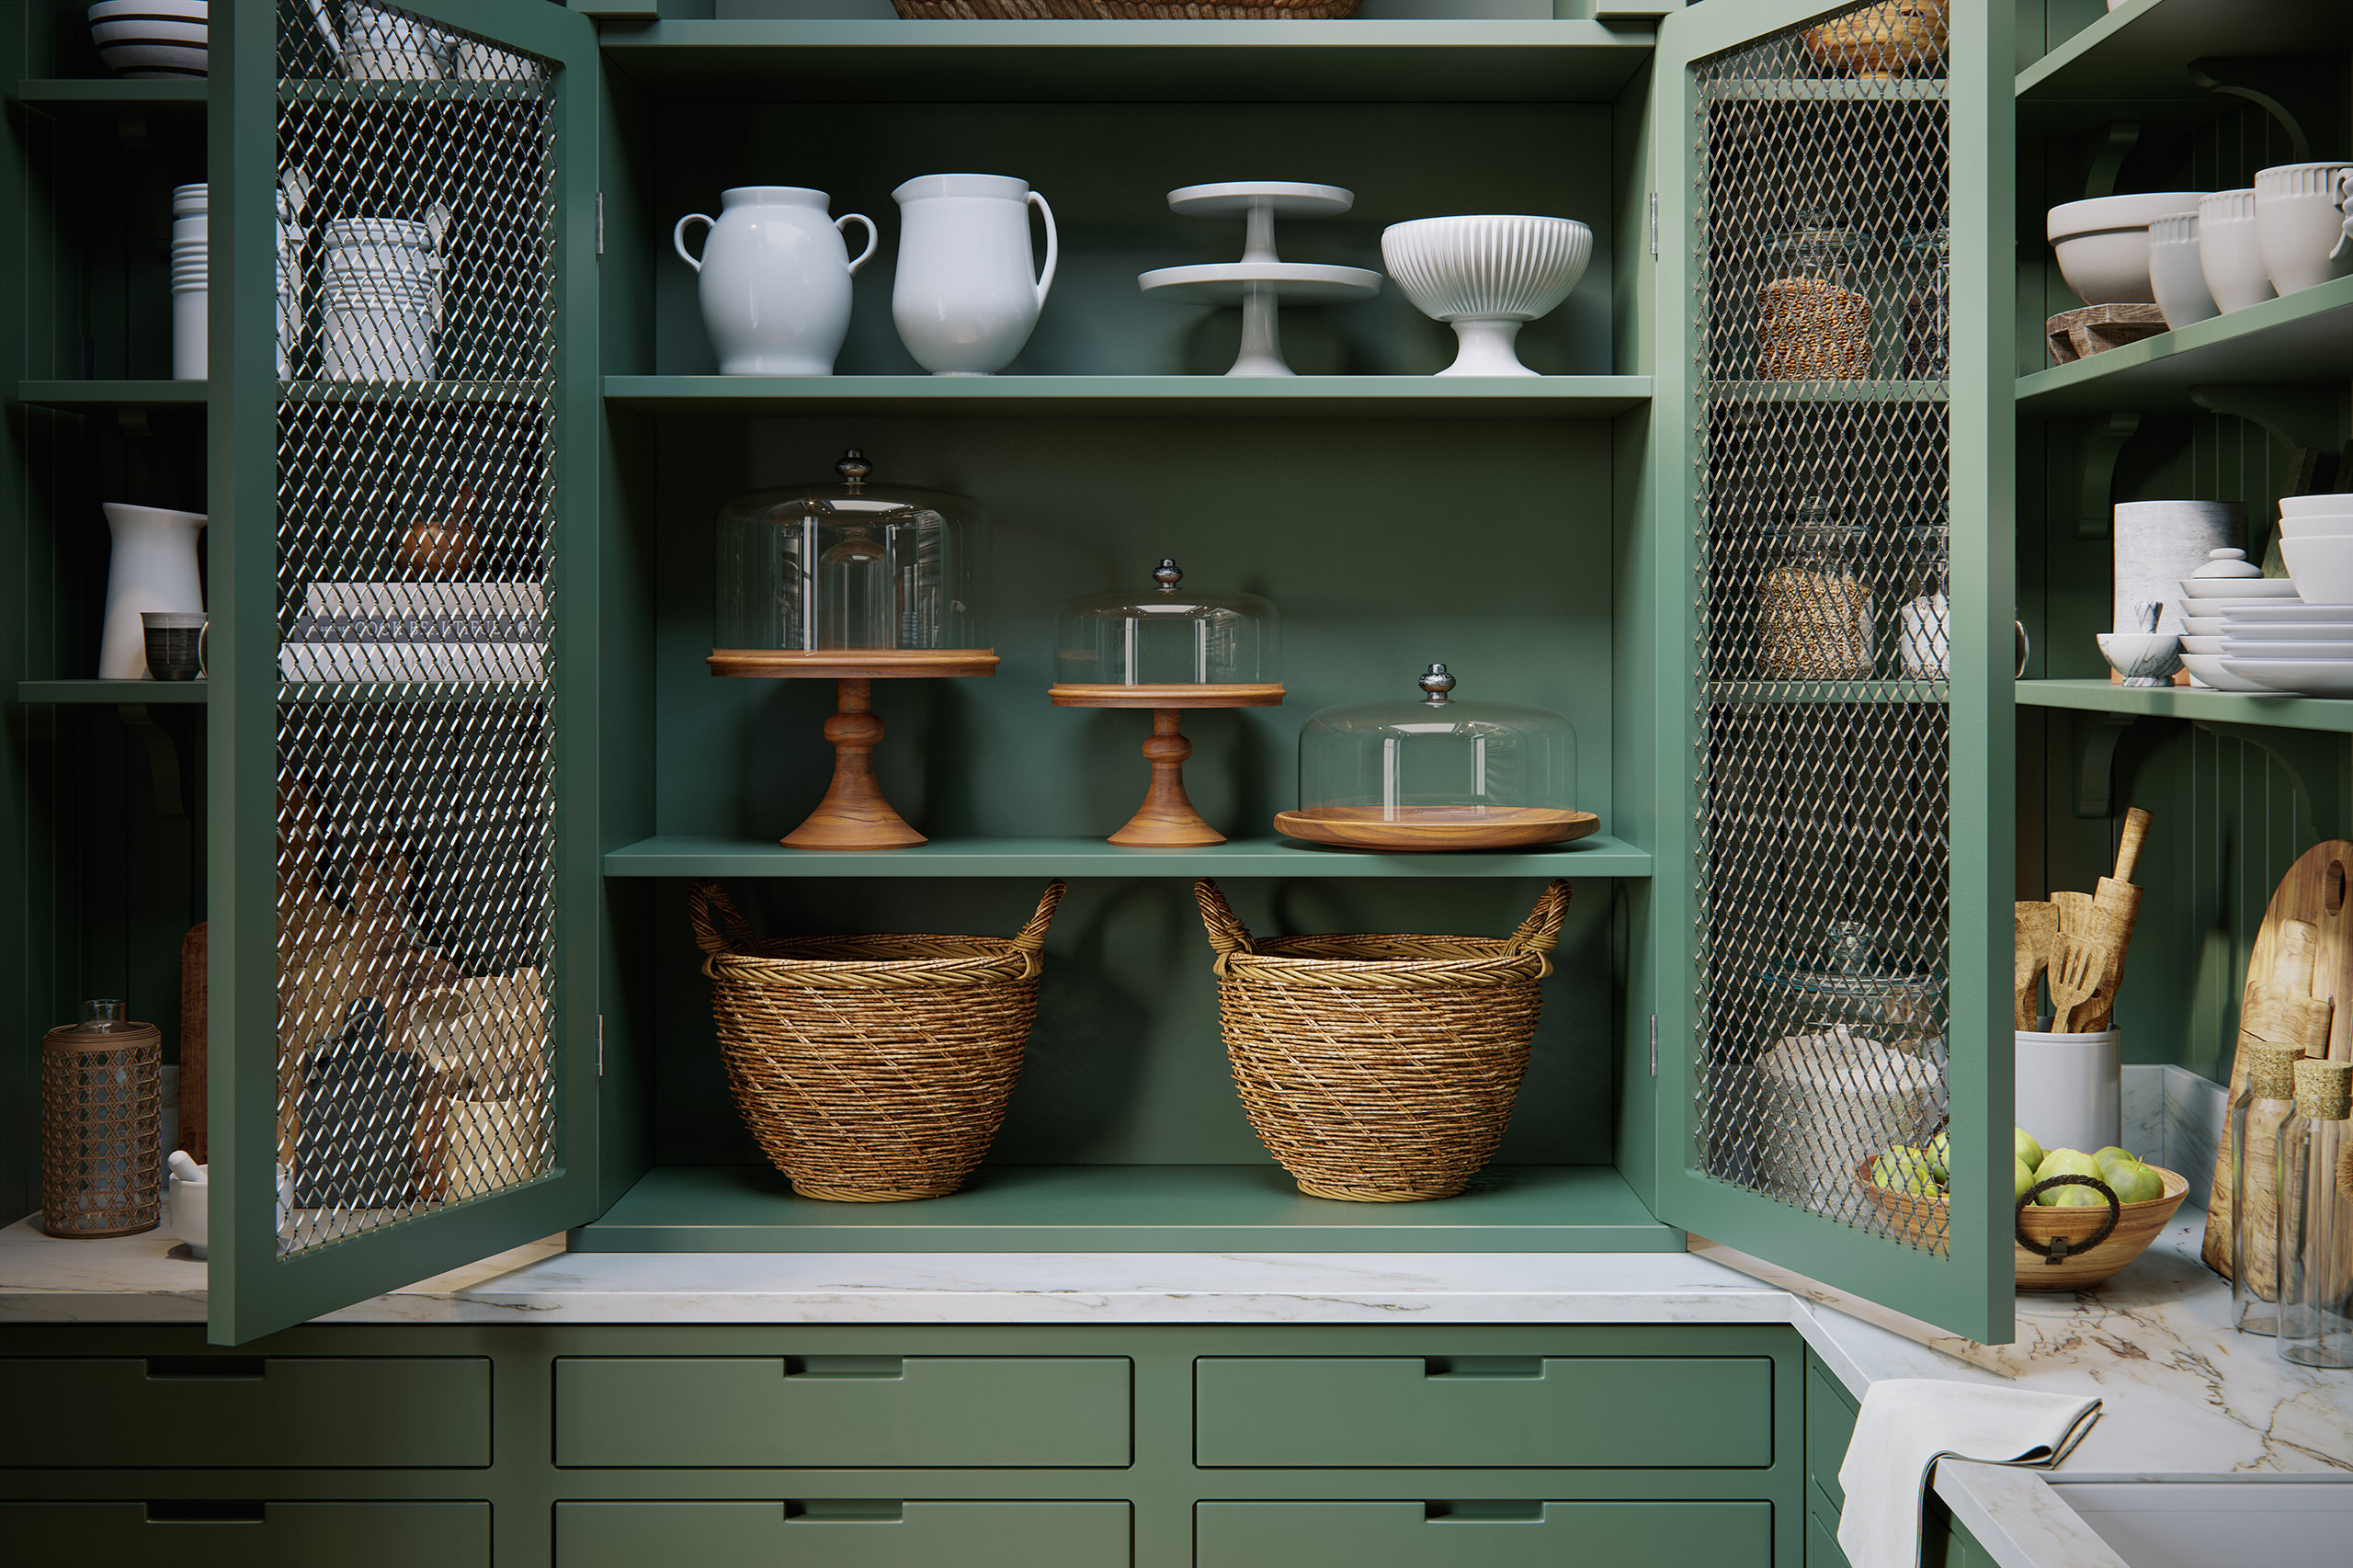 3D view of an open kitchen cabinet showing wicker baskets and crockery on the shelves